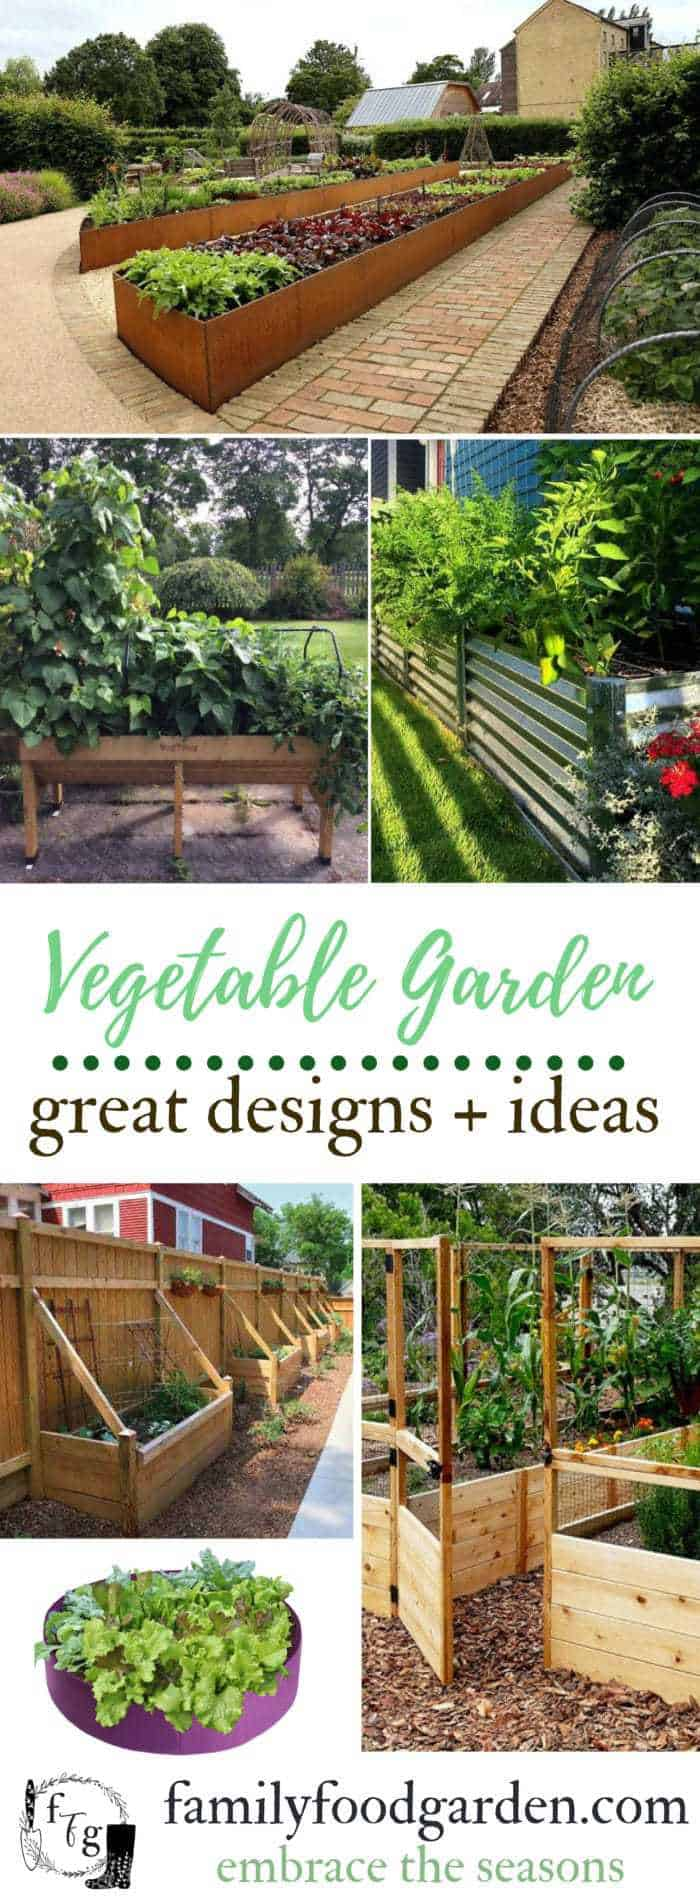 Vegetable garden ideas for metal raised beds, wooden raised beds and urban gardening #gardening #gardenideas #gardendesign #vegetablegardening #vegetablegarden #urbangarden #gardendesign #gardenplanning